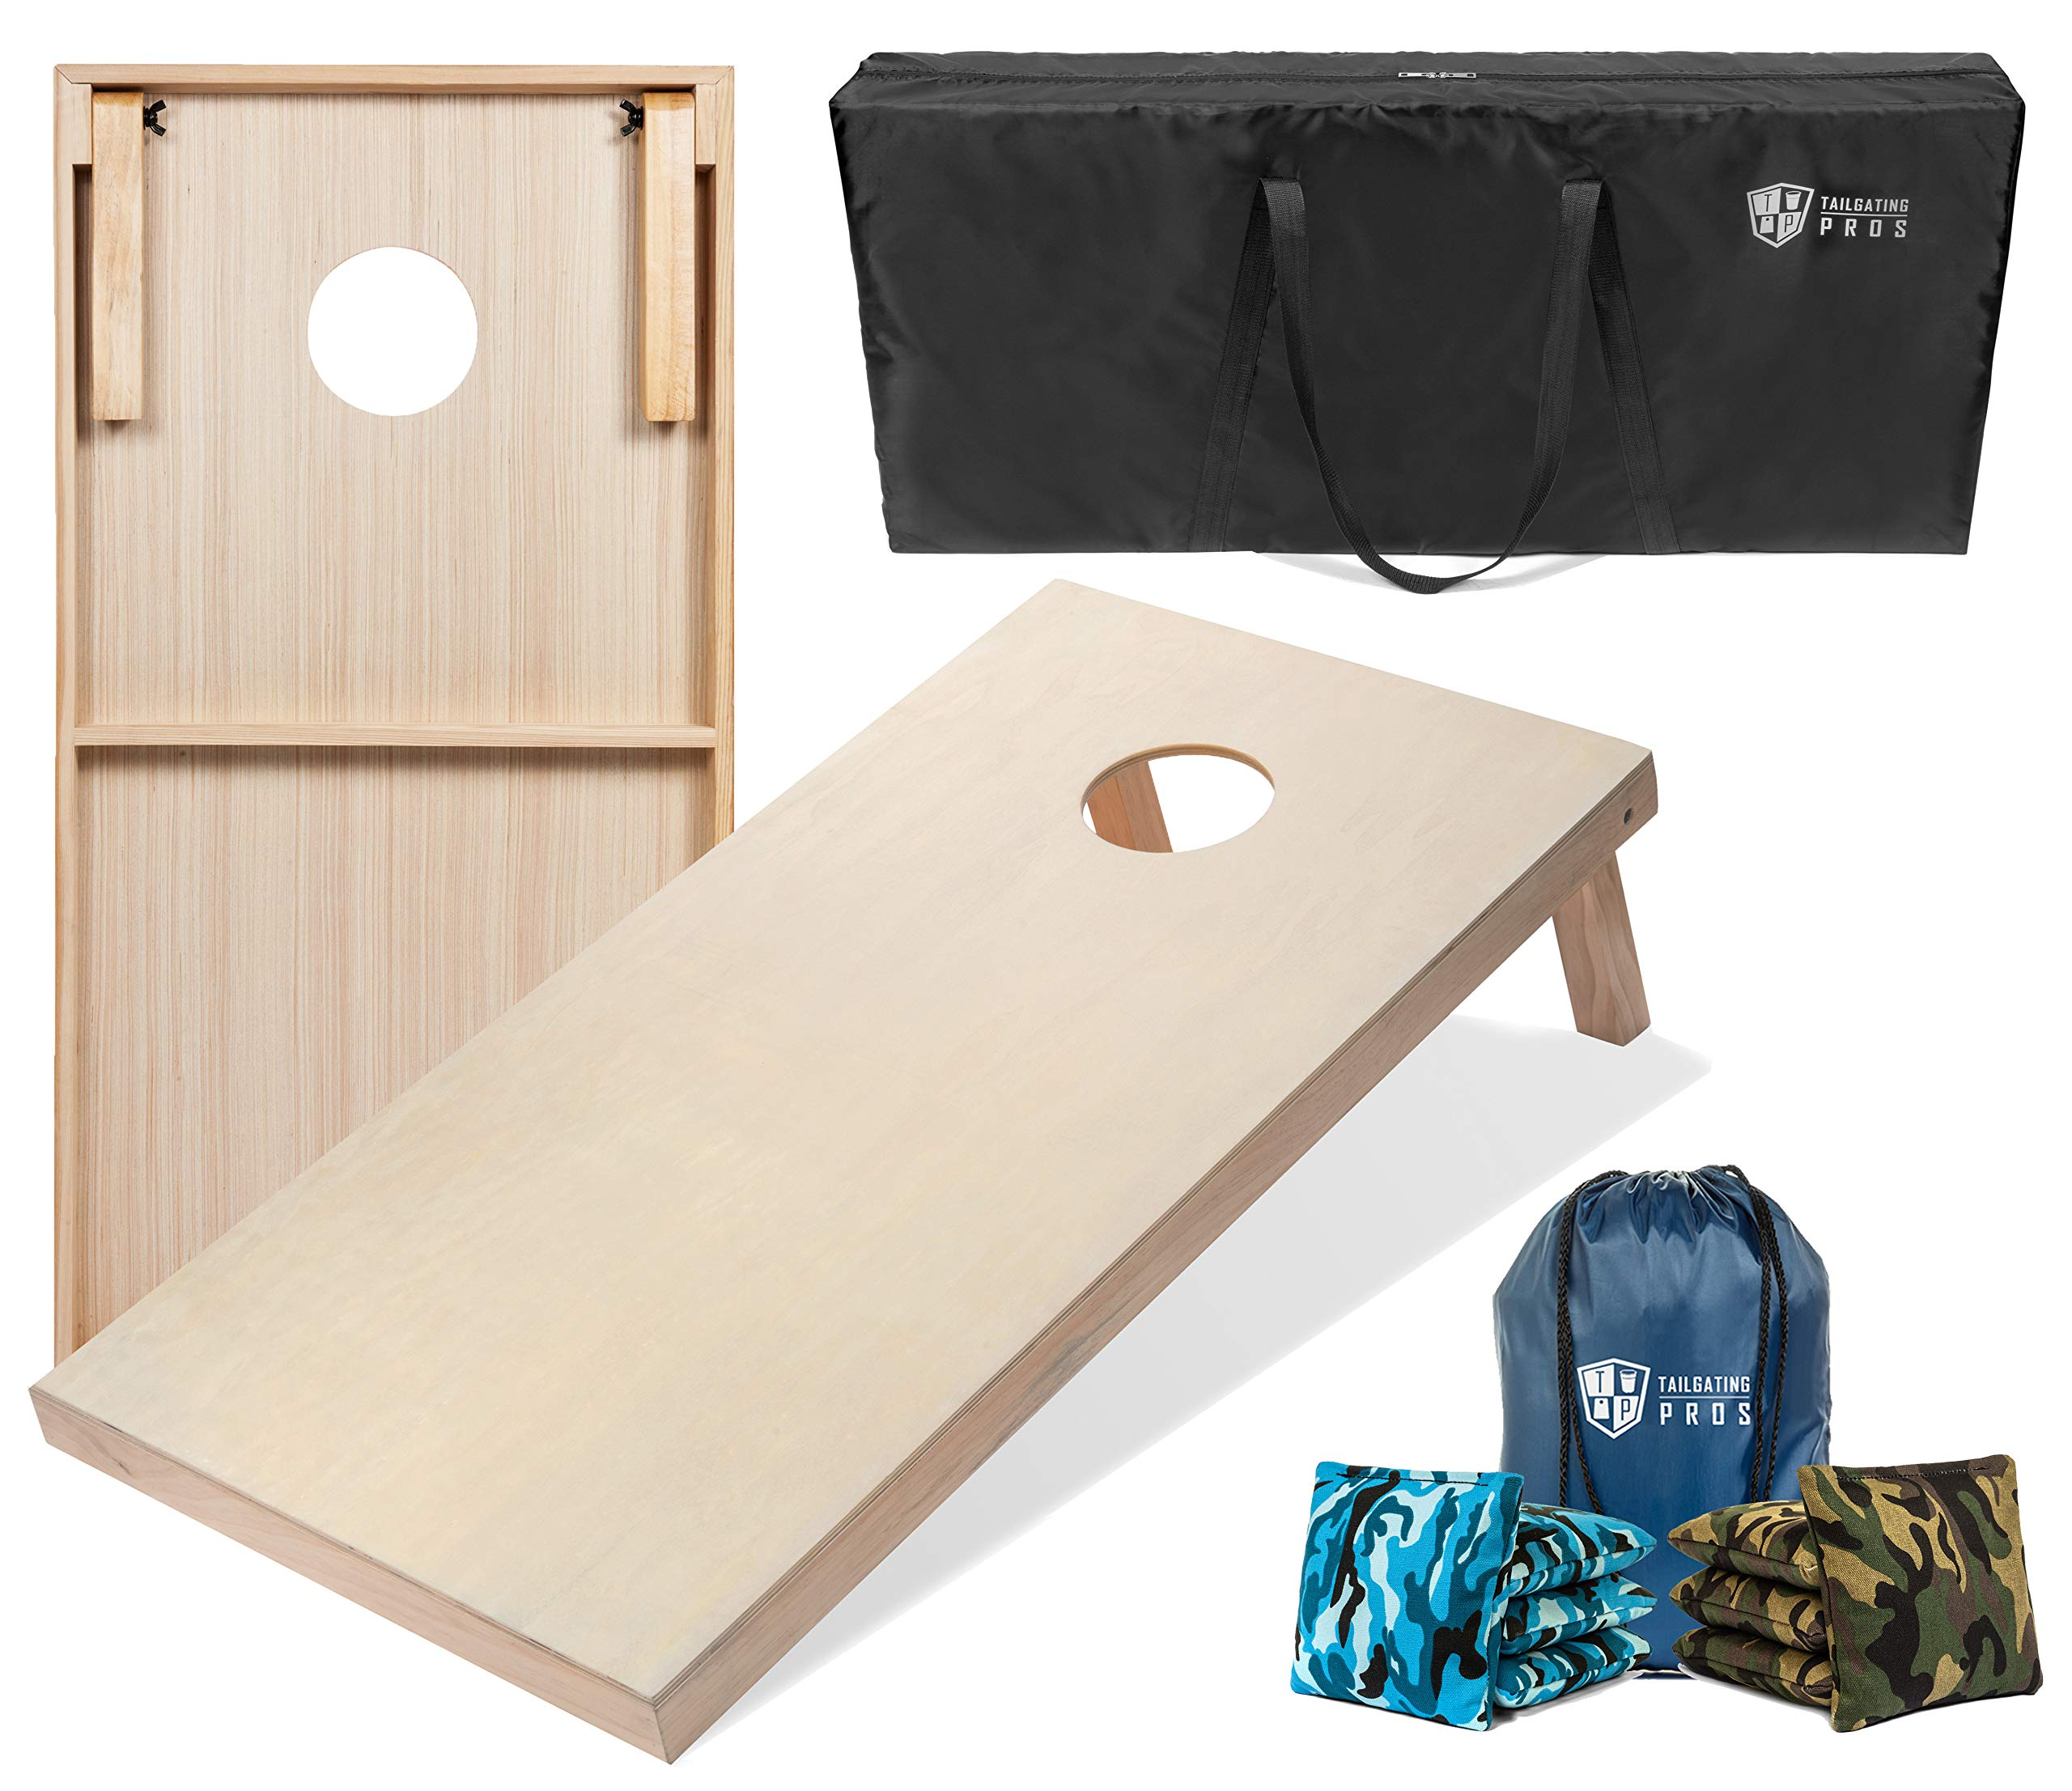 Tailgating Pros 4'x2' & 3'x2' Cornhole Boards w/Carrying Case & Set of 8 Cornhole Bags (You Pick Colors) 150+ Color Combos! (Blue Camo/Green Camo, 4'x2' Boards) by Tailgating Pros